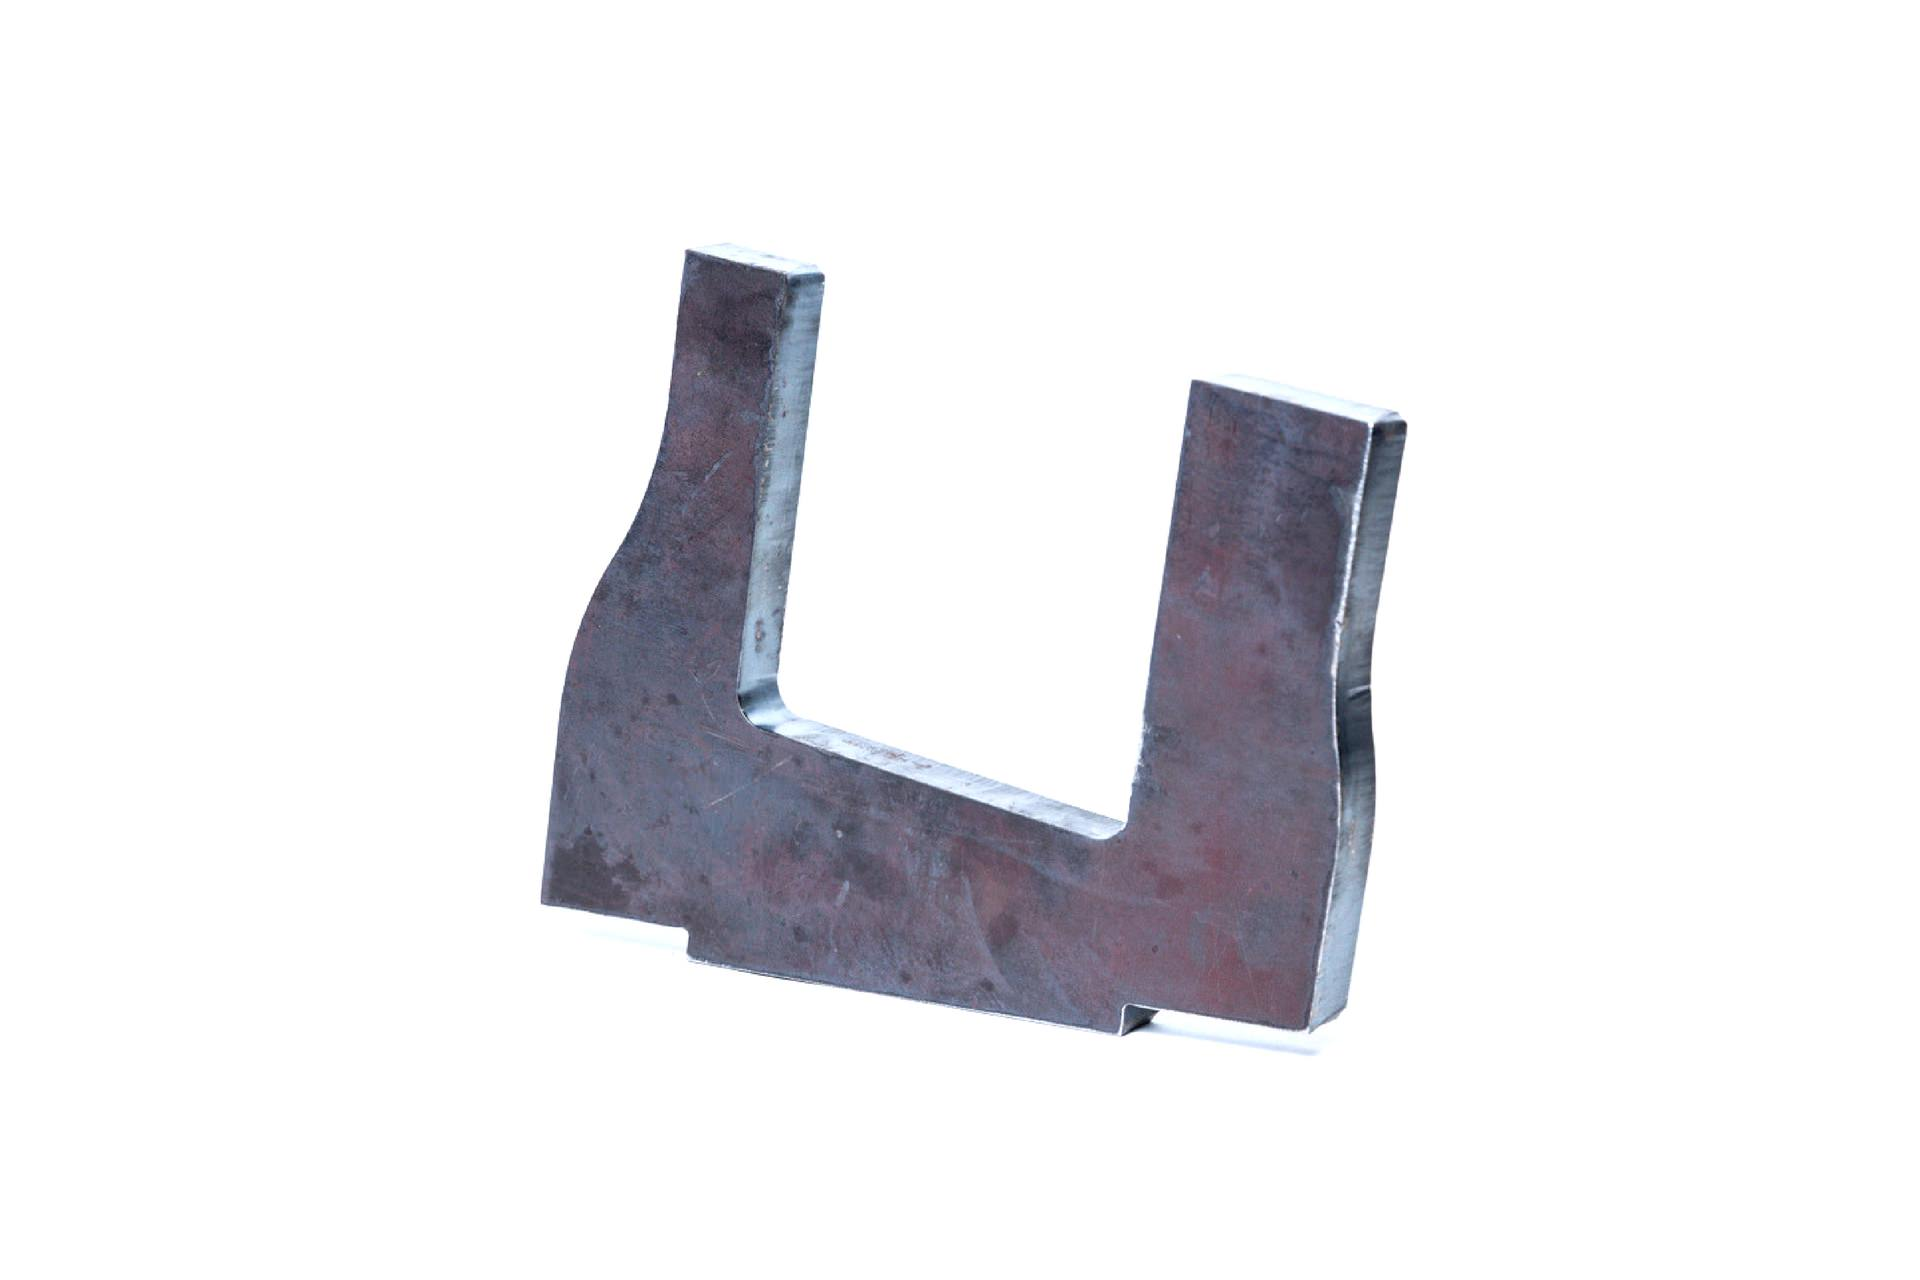 Metal parts cut by oxy-fuel – 01